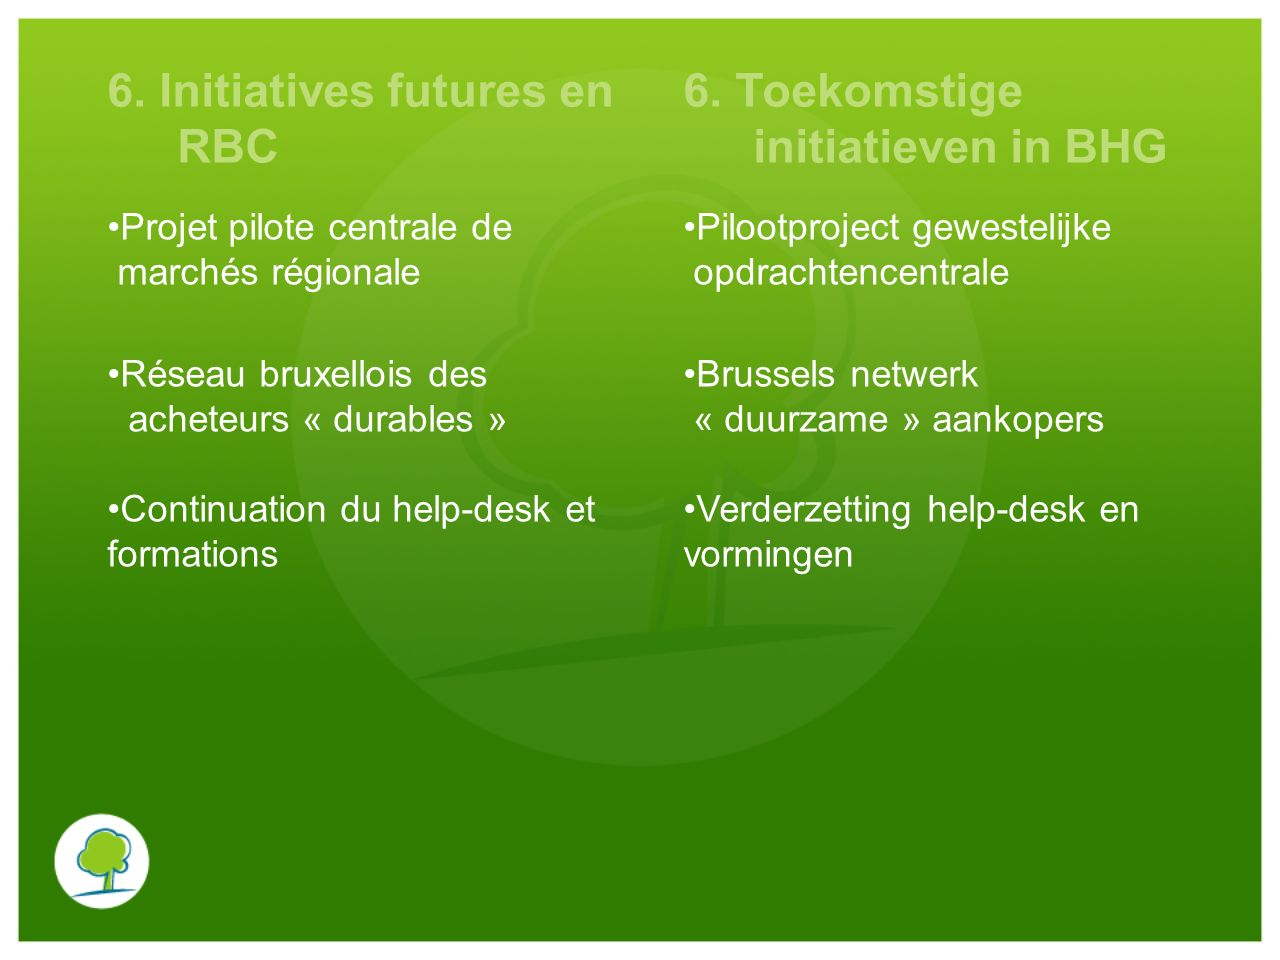 6. Initiatives futures en RBC 6. Toekomstige initiatieven in BHG